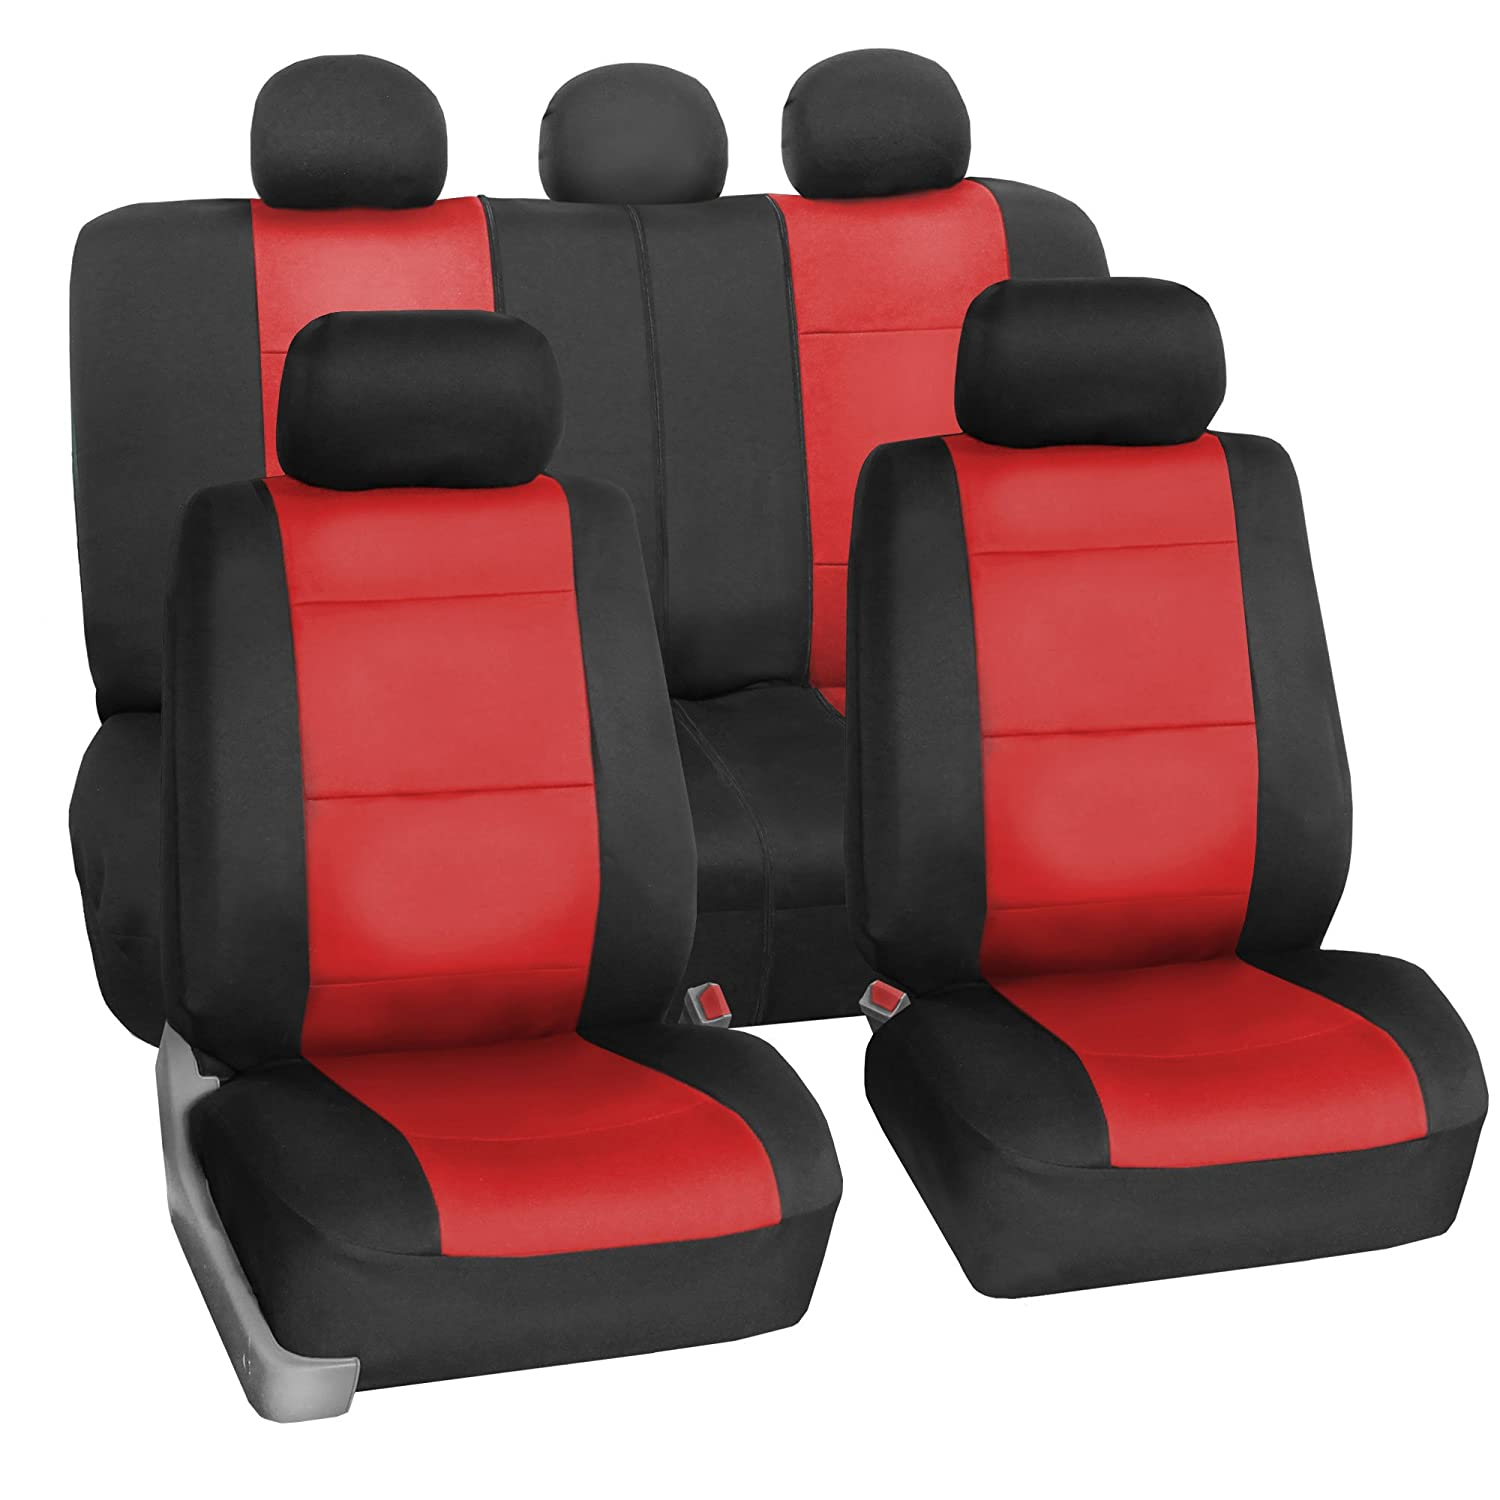 Seat Cover For Car Velcromag